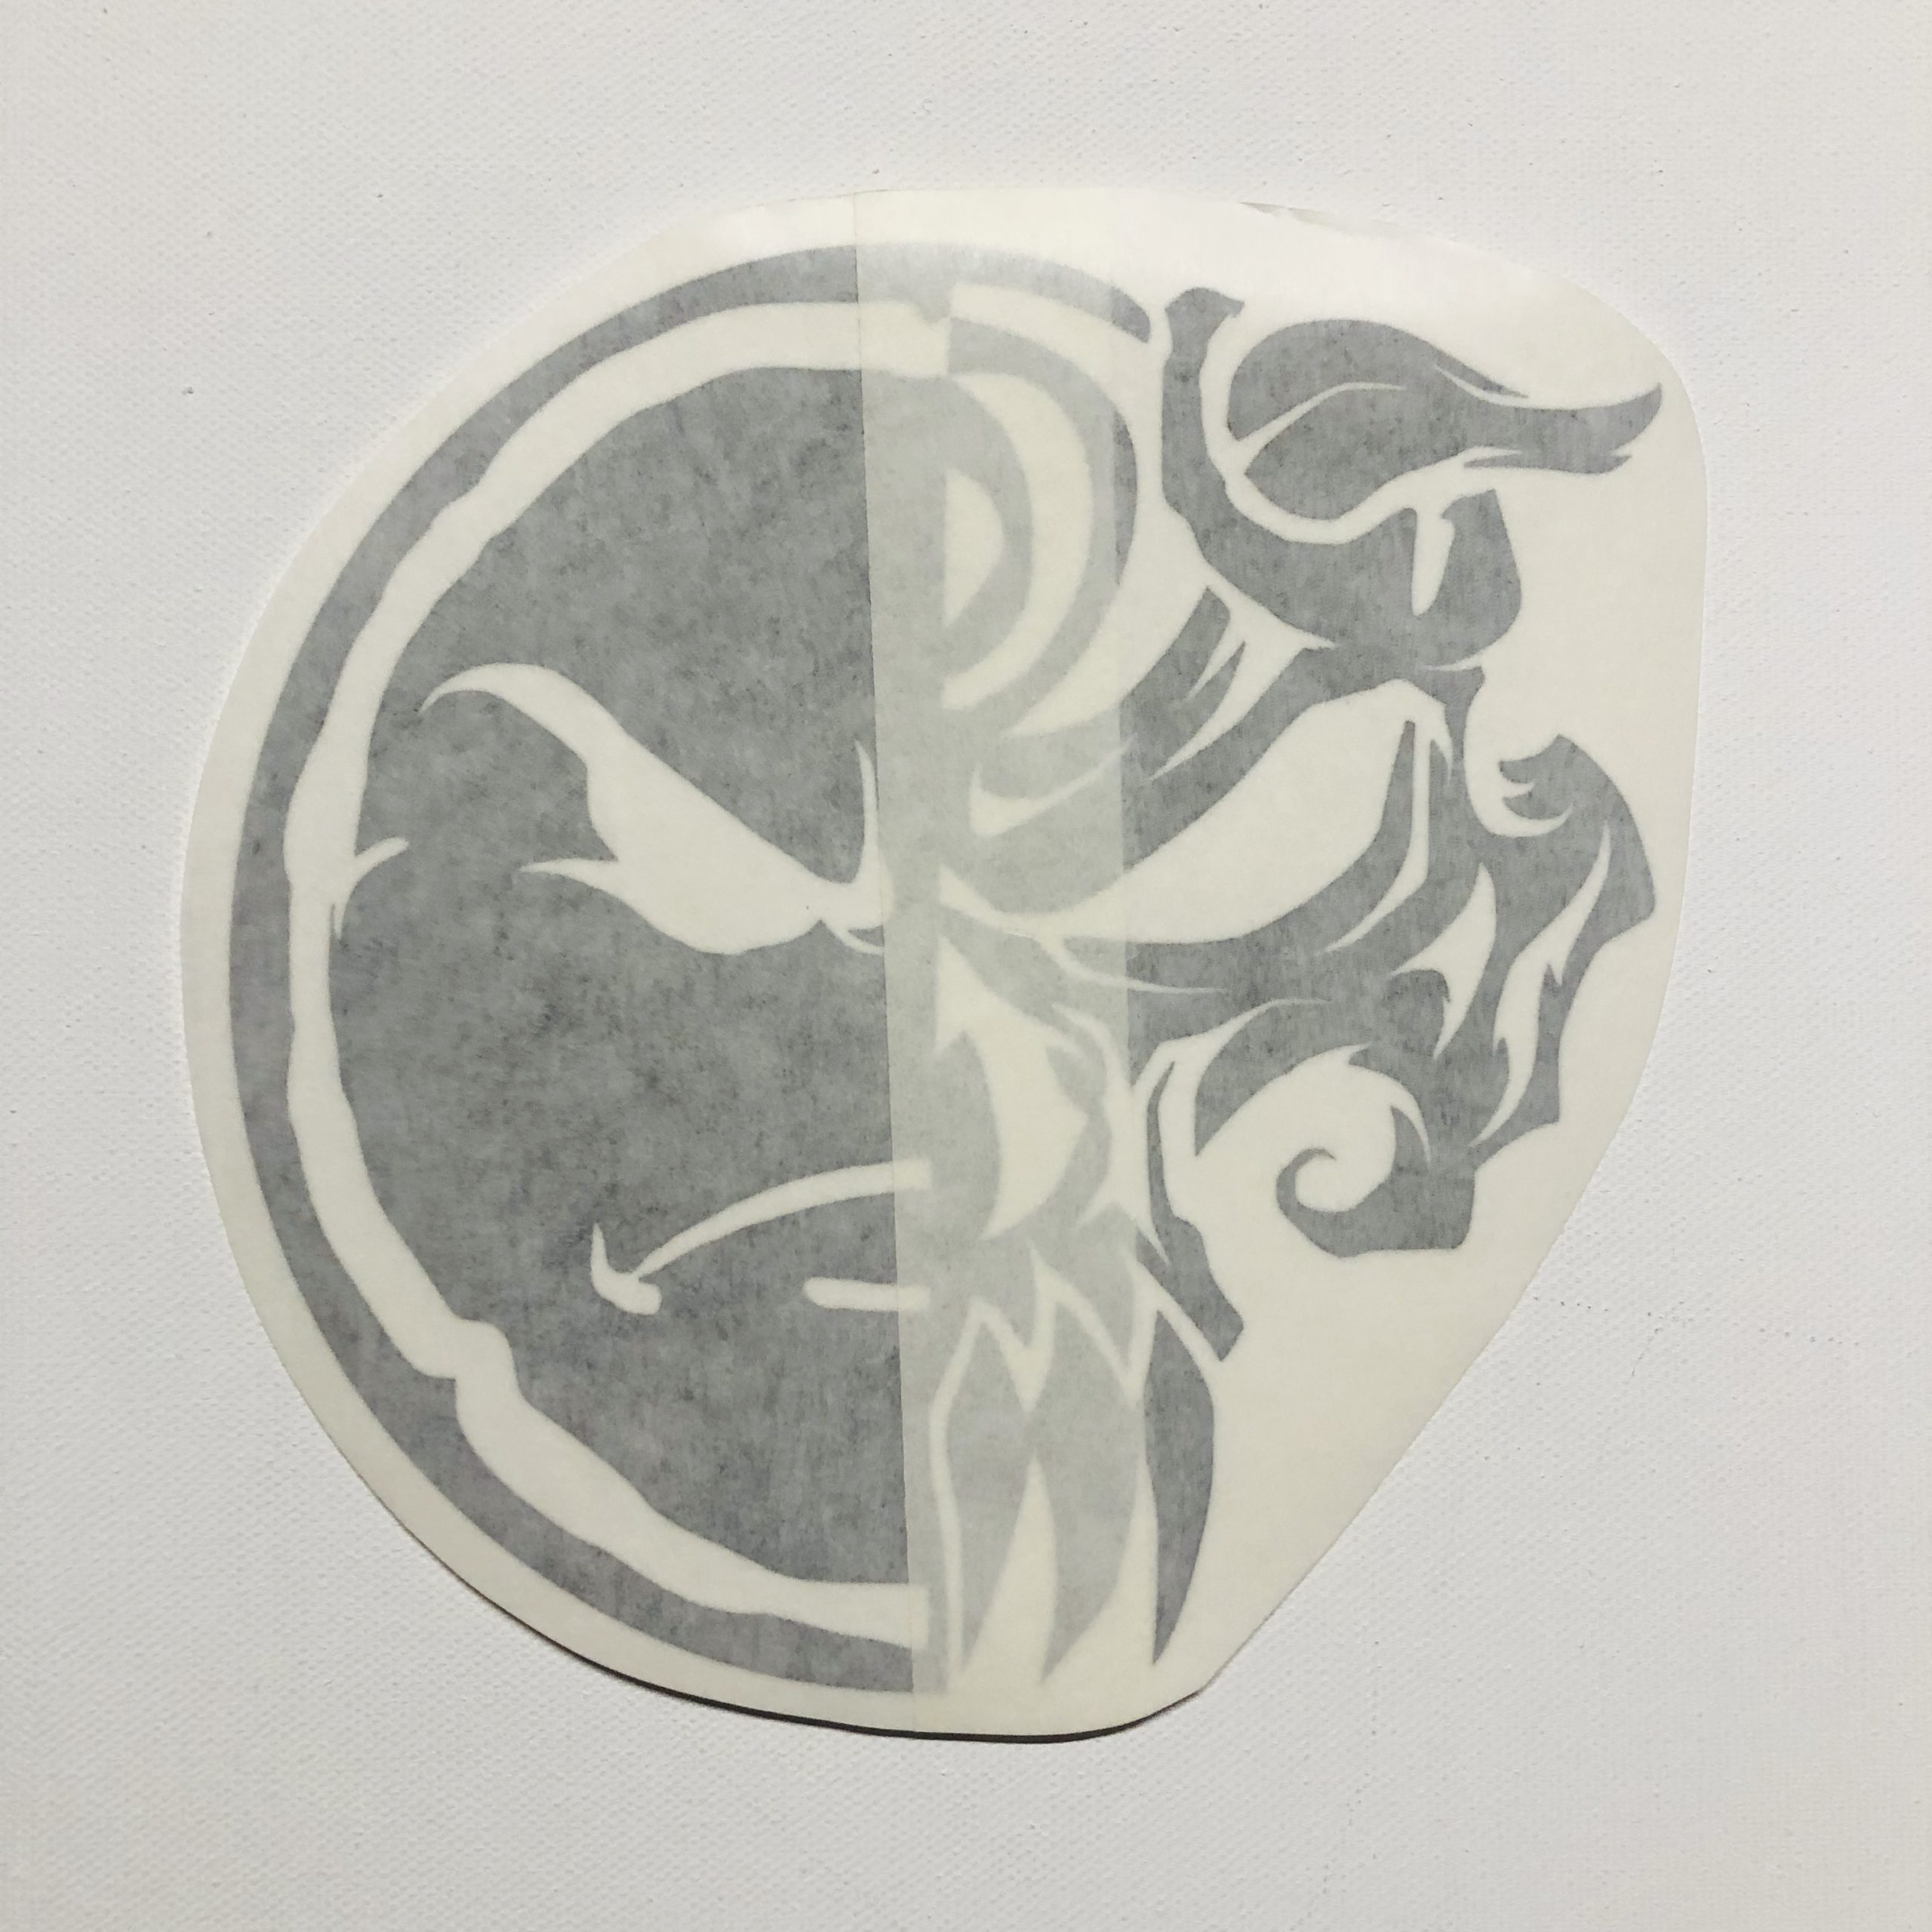 Turn-Dead 6″ Vinyl Window Decal (5 Different Colors)